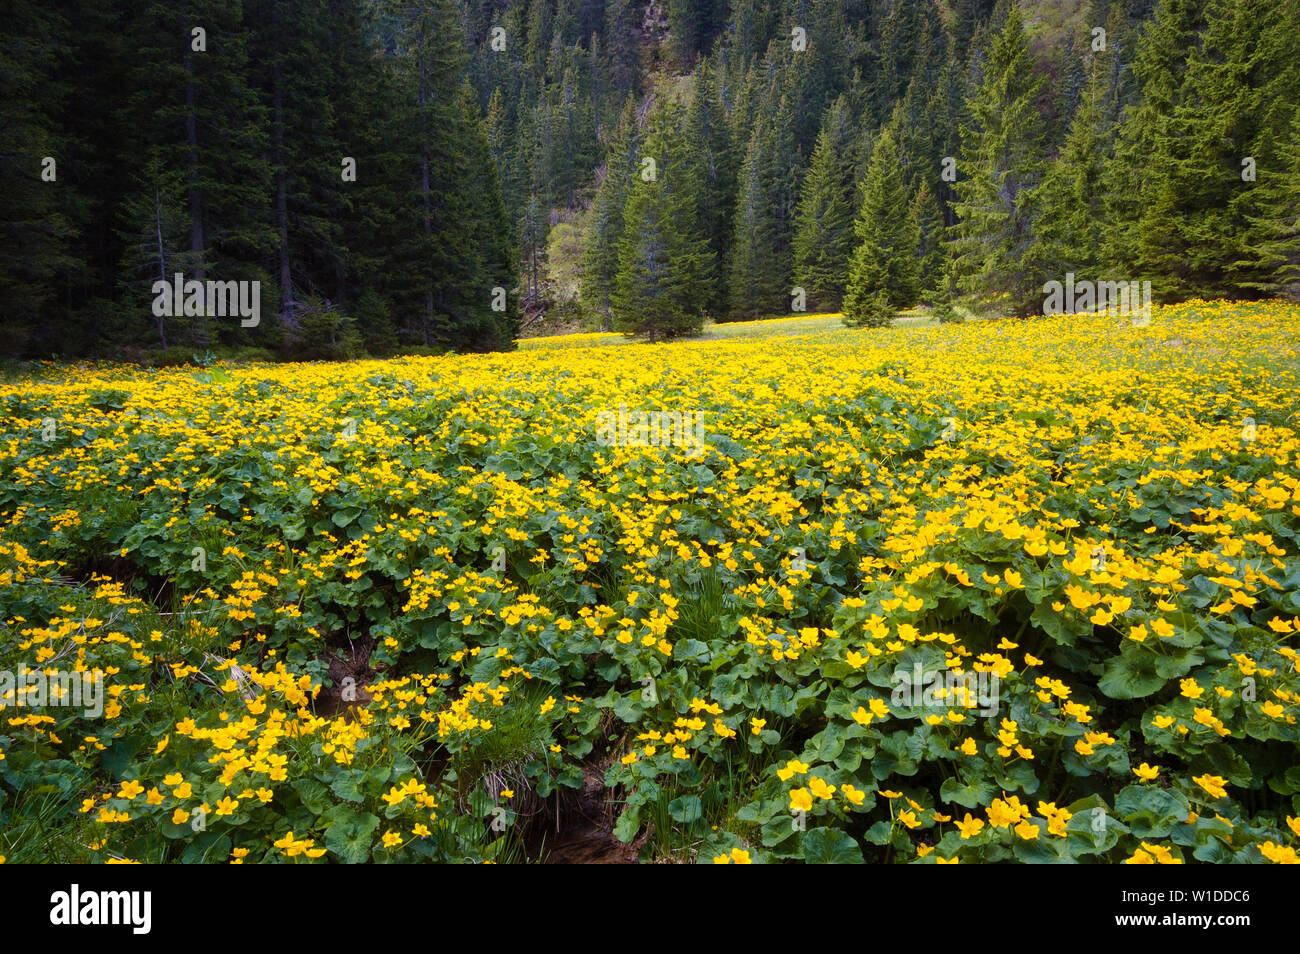 Yellow spring flowers. Wild buttercups in the marshland near the spruce forest. Blooming mountain valley - Stock Image